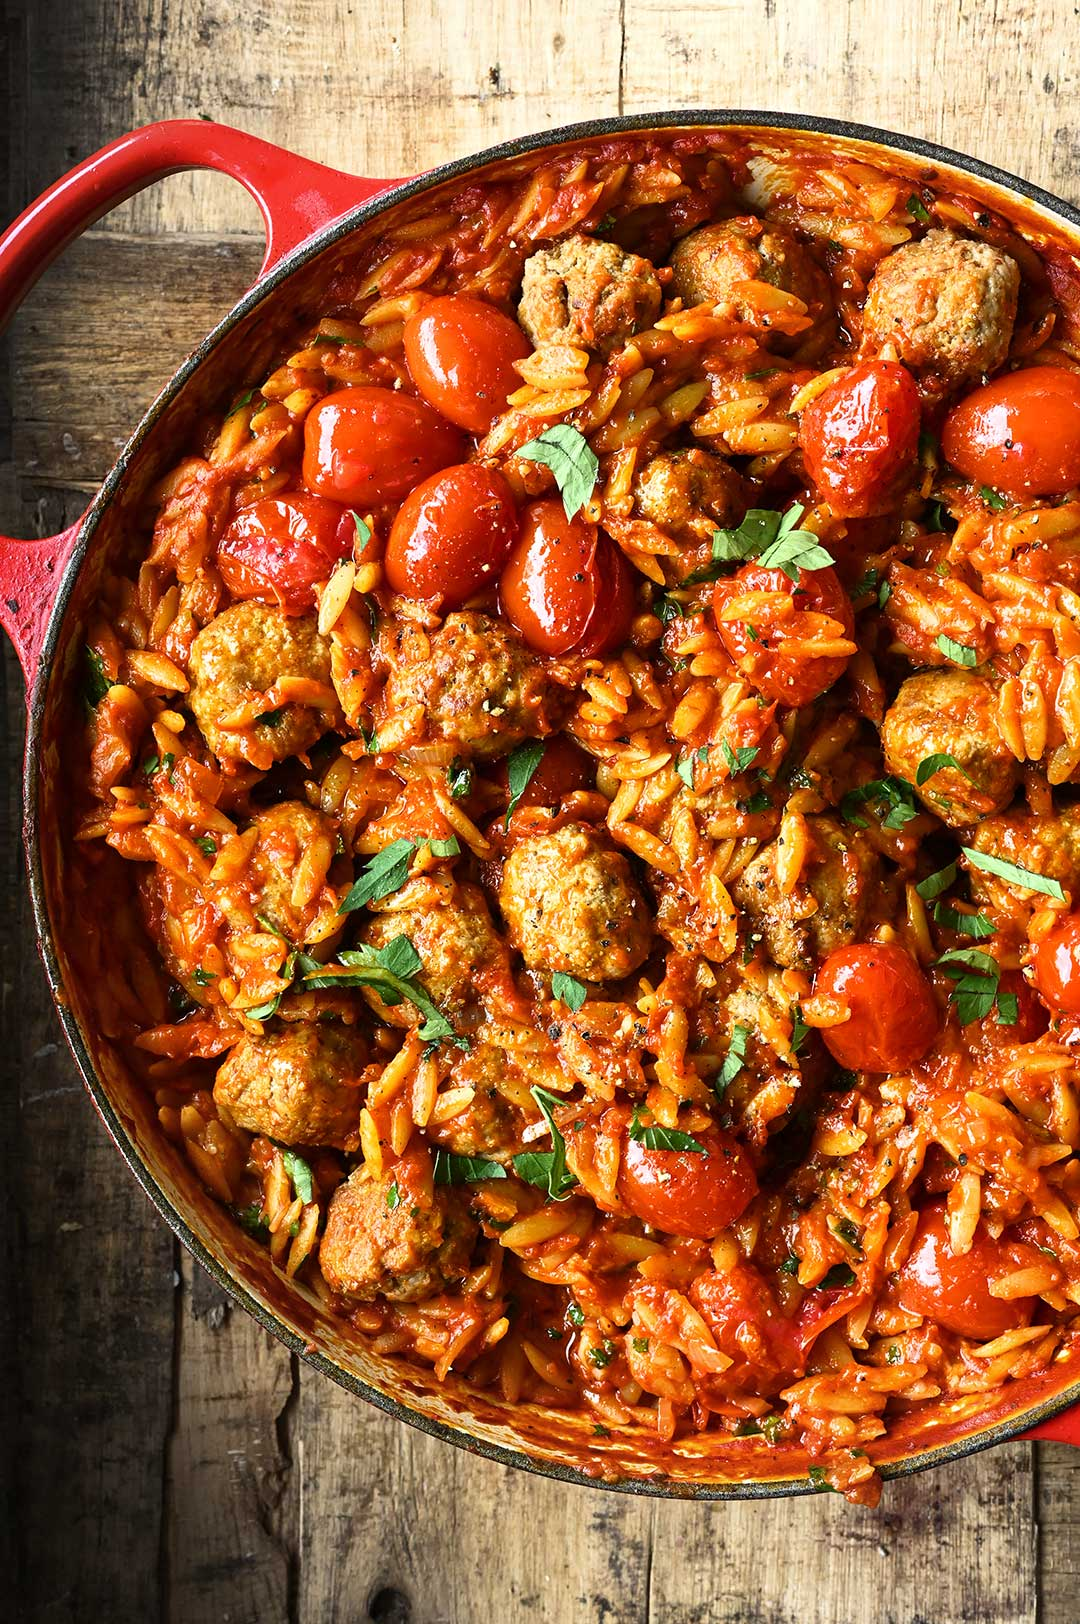 serving dumplings | Meatballs in tomato sauce with orzo